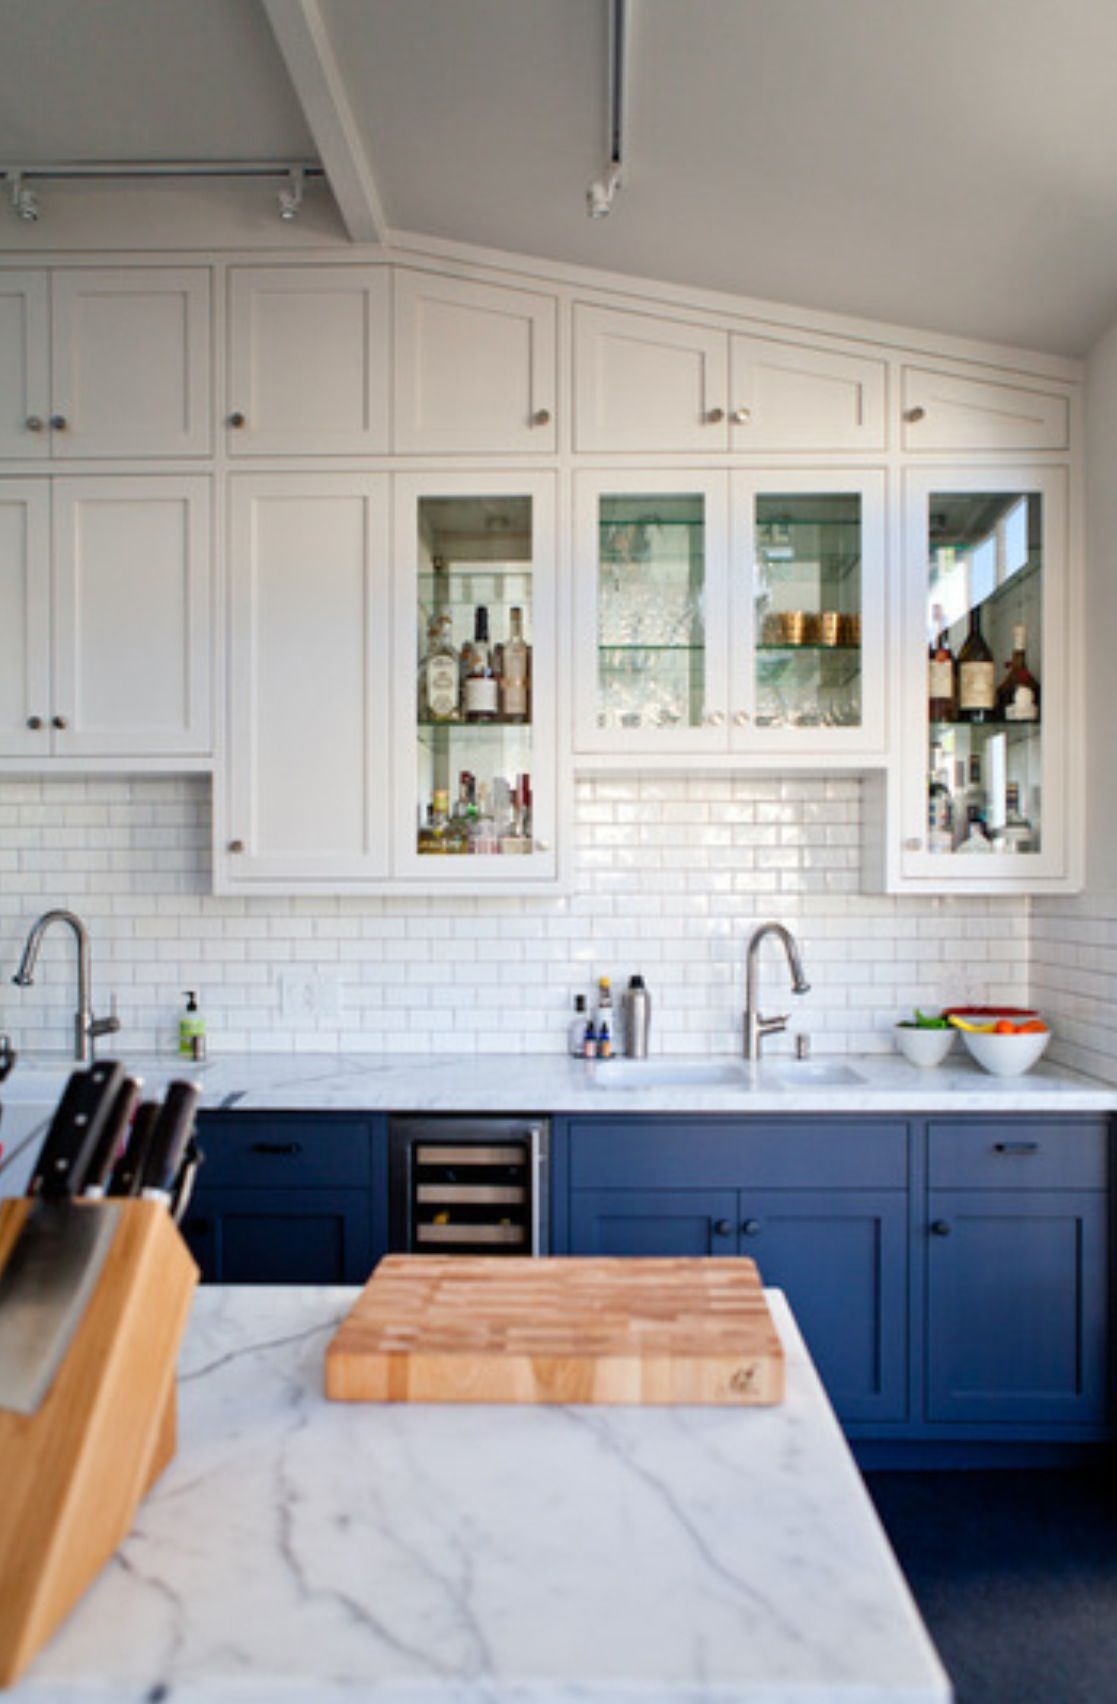 The New Kitchen 5 Top Trends Blue Gray Kitchen Cabinets Kitchen Trends Home Kitchens